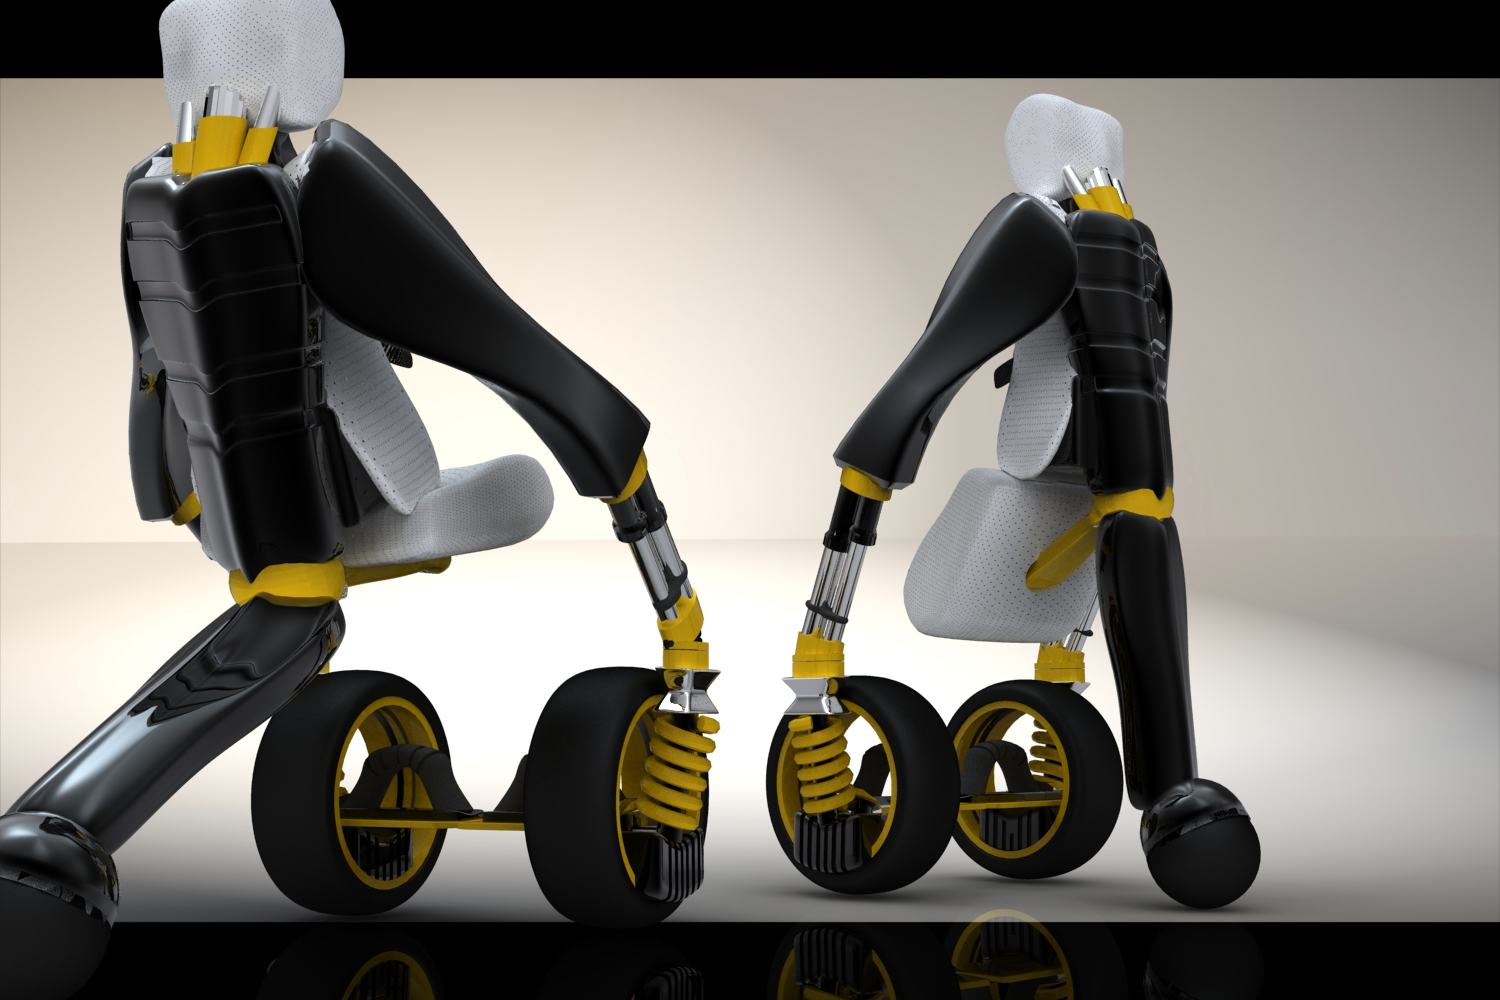 wheelchair design padded folding chairs with arms by jake eadie at coroflot